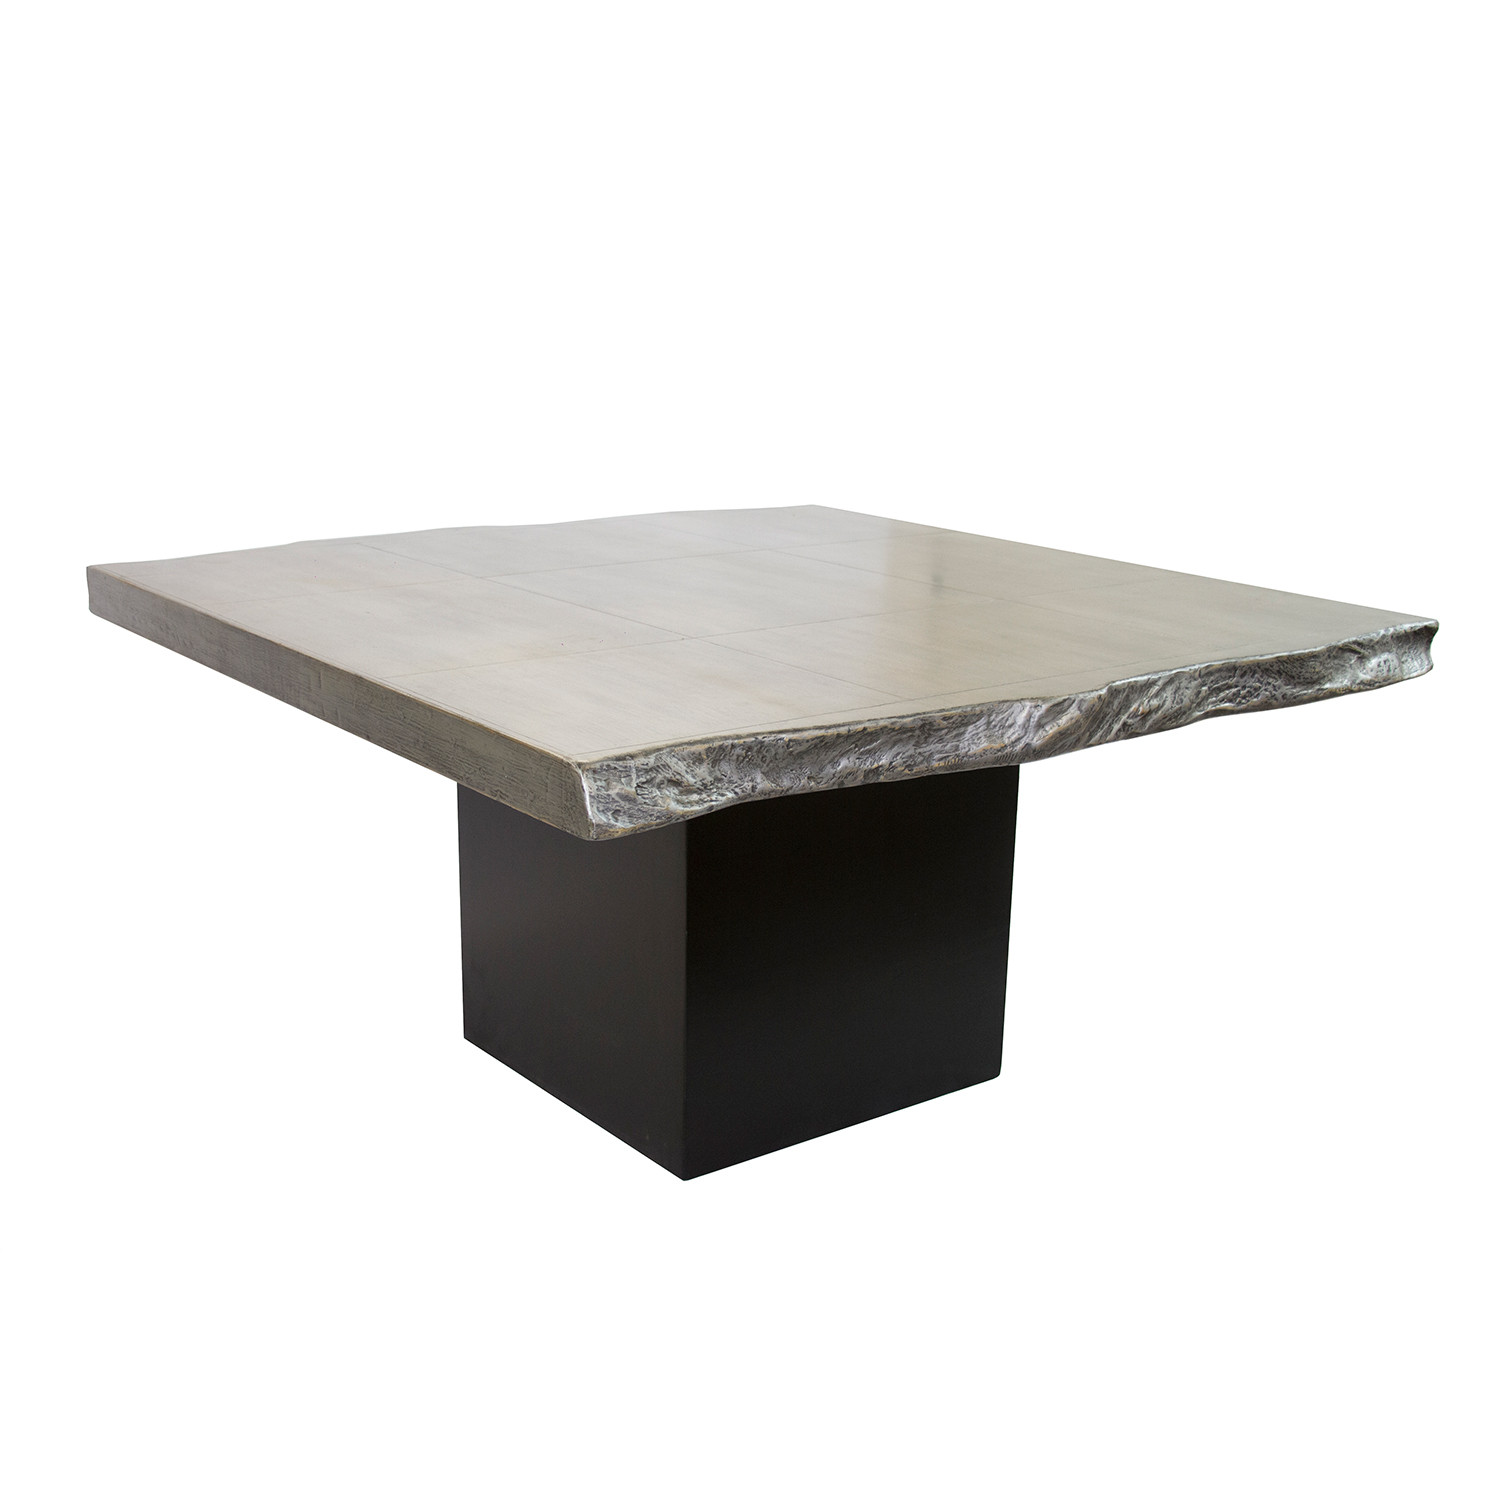 Lombard gray and black dining table madera home touch of modern lombard gray and black dining table geotapseo Gallery